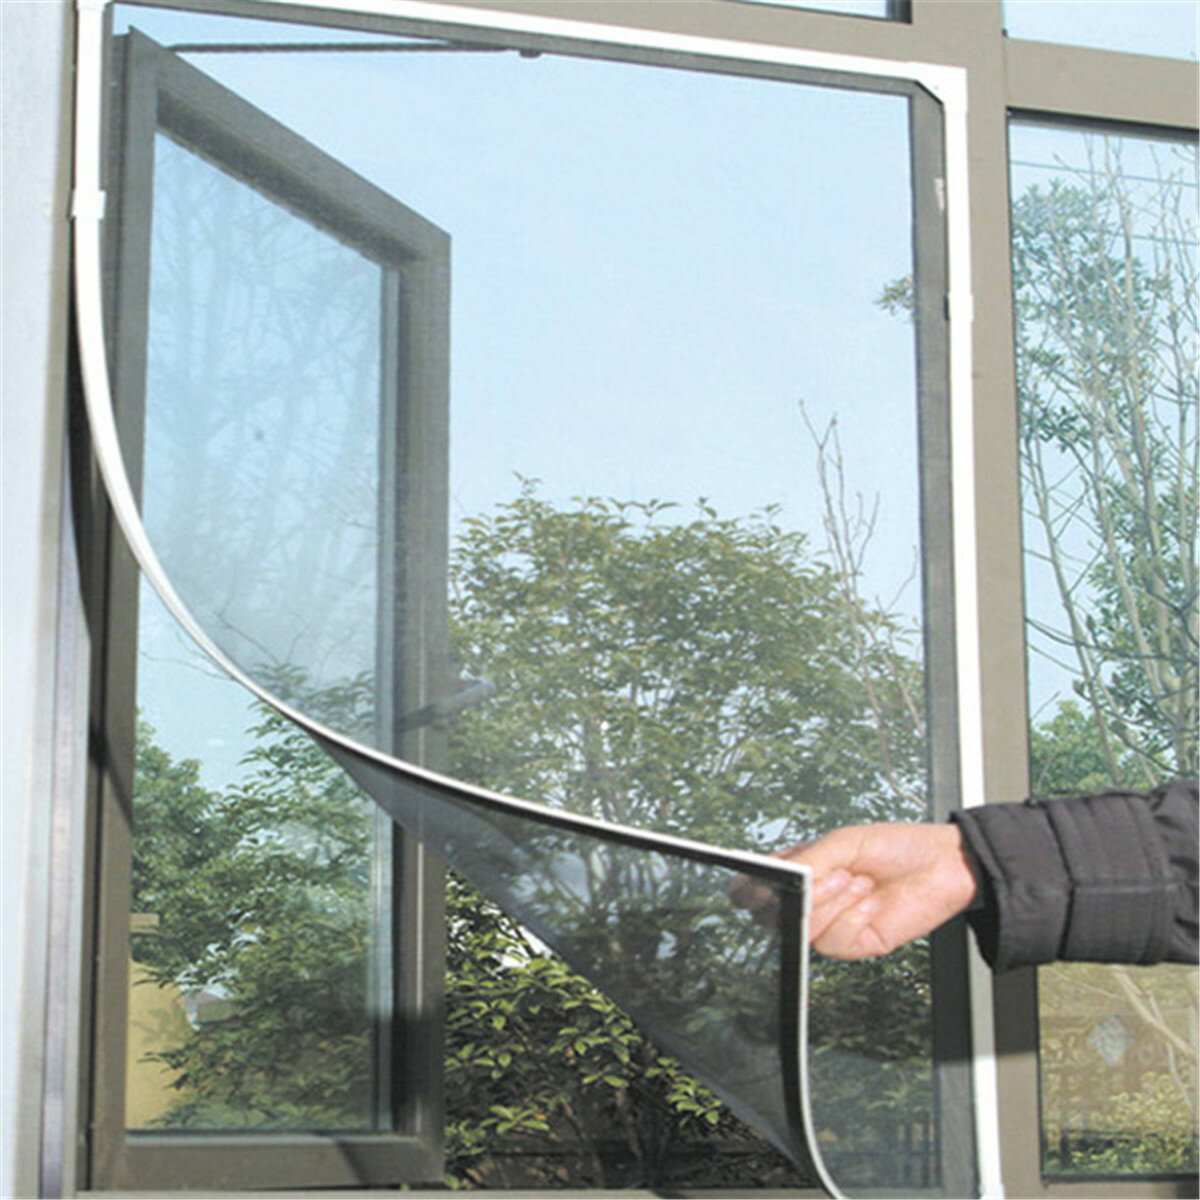 Fly Bug Insect Curtain Mesh Bug Mosquito Door Window Sticky Netting Wire Mesh Screen Protector